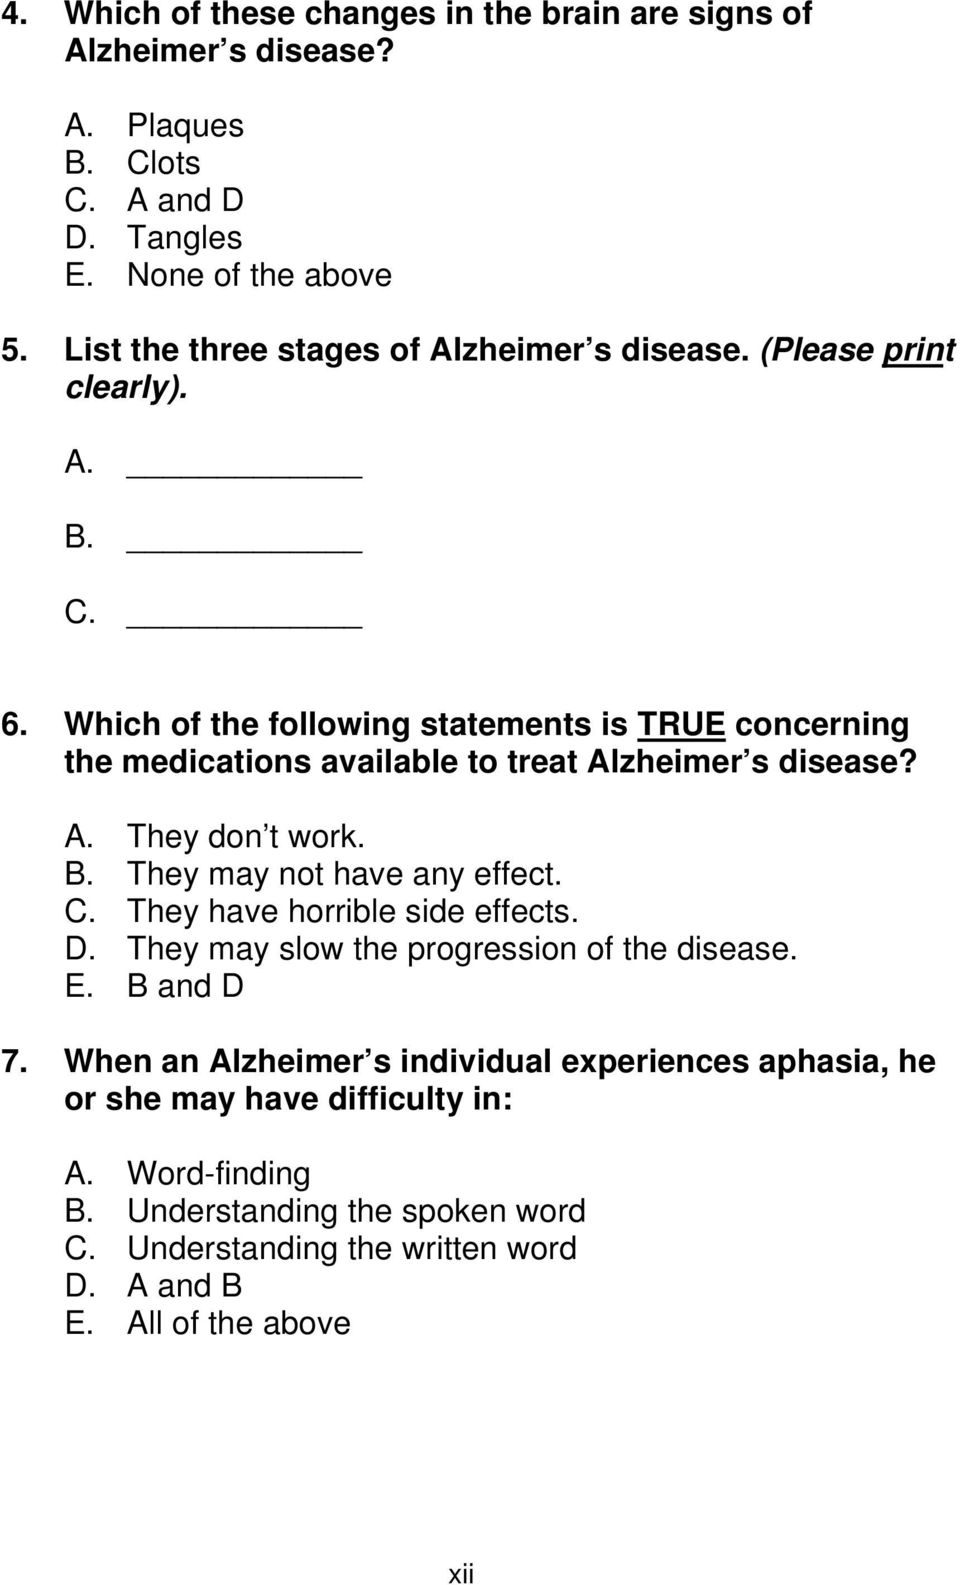 Which of the following statements is TRUE concerning the medications available to treat Alzheimer s disease? A. They don t work. B. They may not have any effect. C.